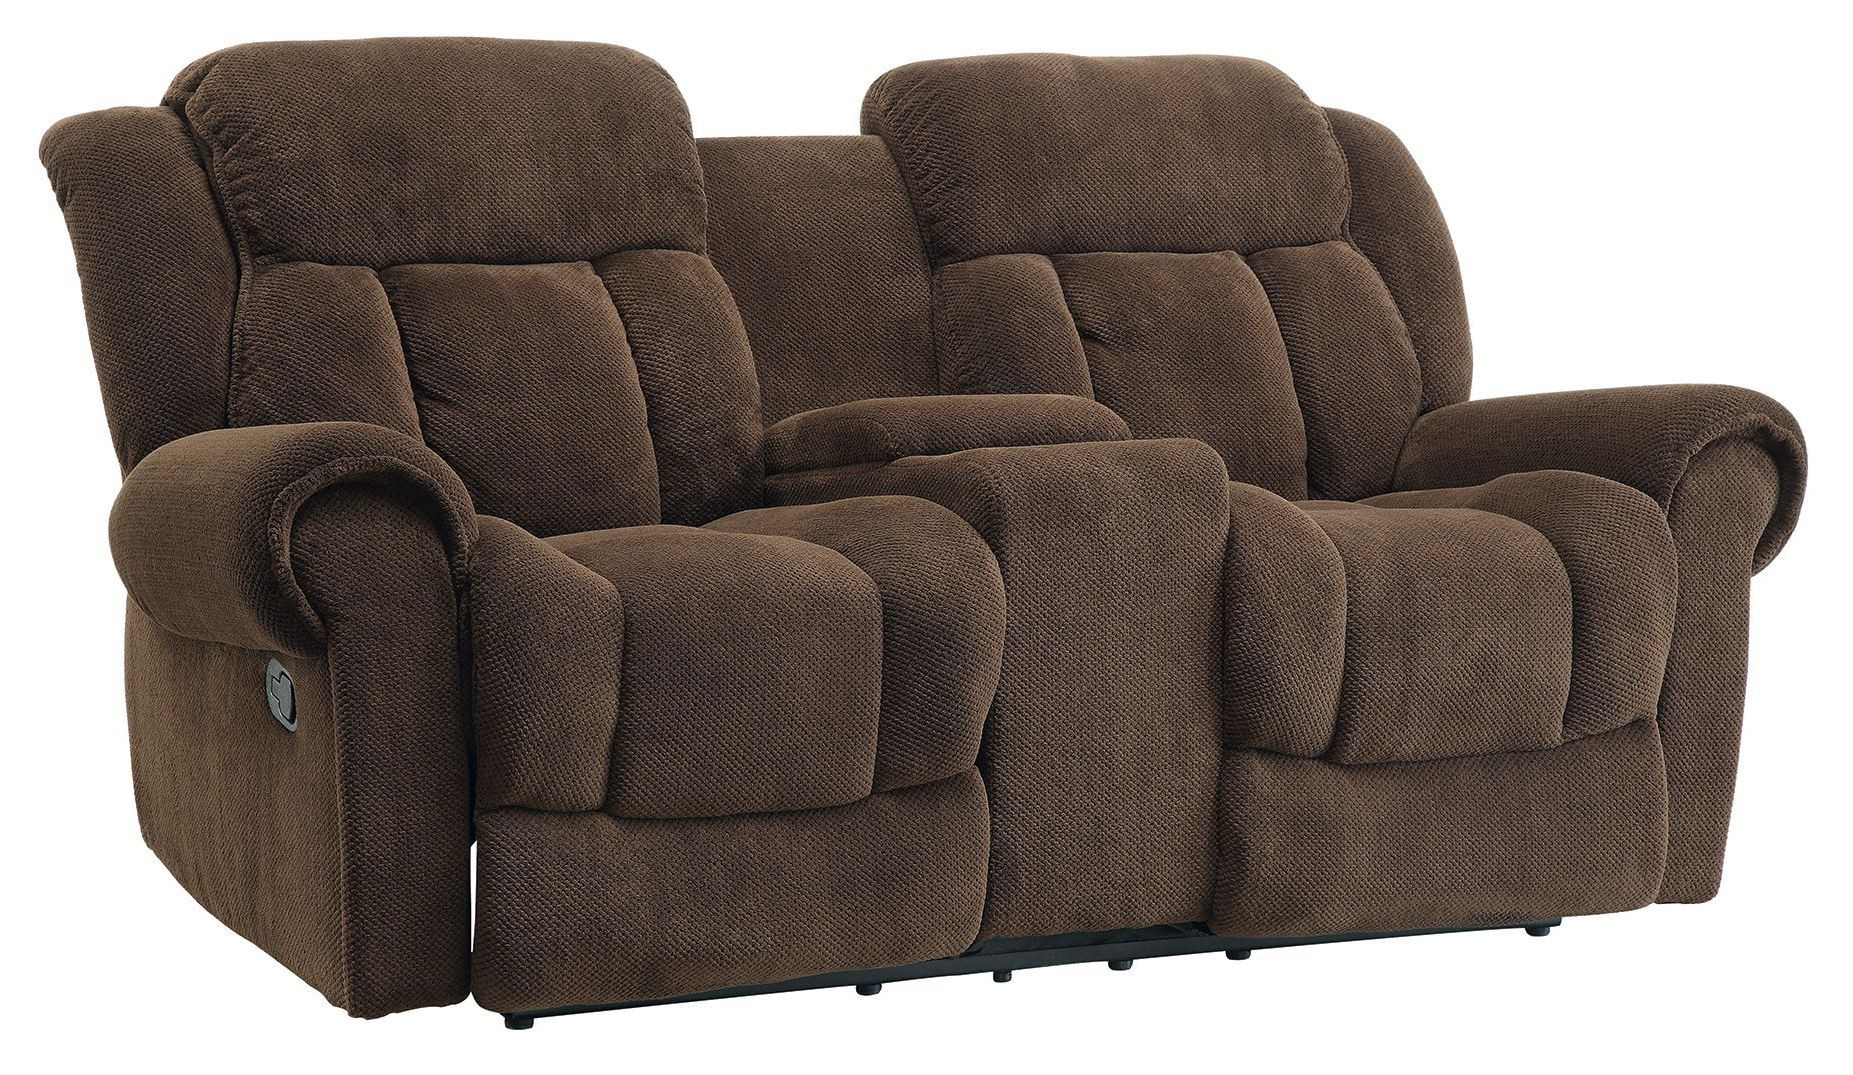 Reige Motion Chocolate Reclining Loveseat From Coaster